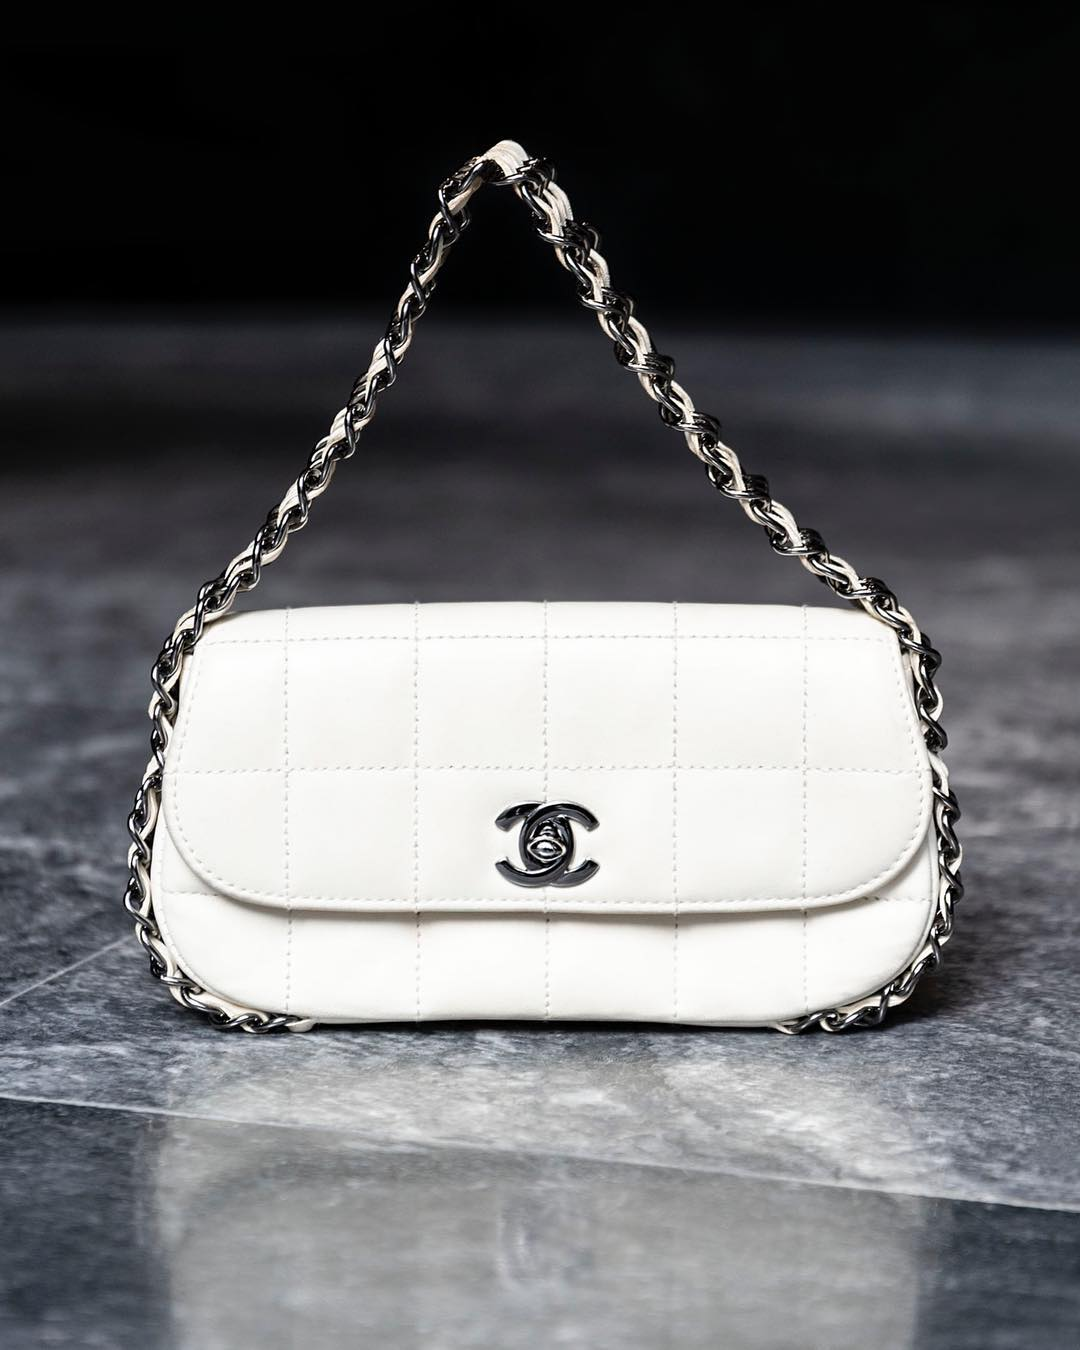 87211a23ed41cf ... Collection / Chanel Mini White Clutch.  creaidgreece_4_2_2019_17_51_23_763